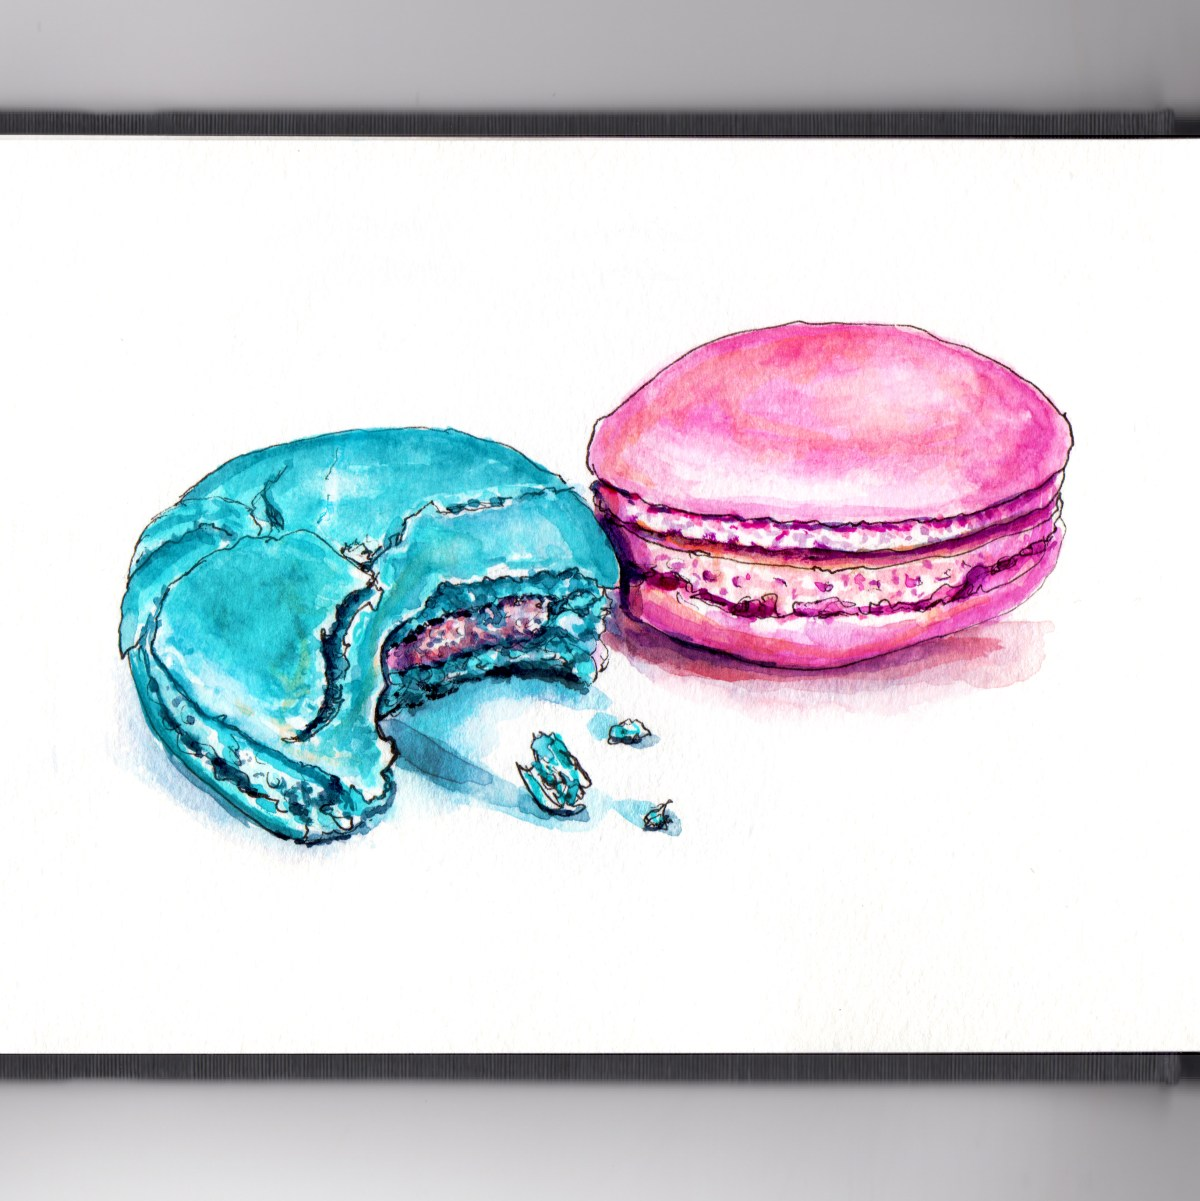 Day 27 - #WorldWatercolorGroup - When Things Get Rough Half Eaten Macaron Blue and Pink Macarons - #doodlewash